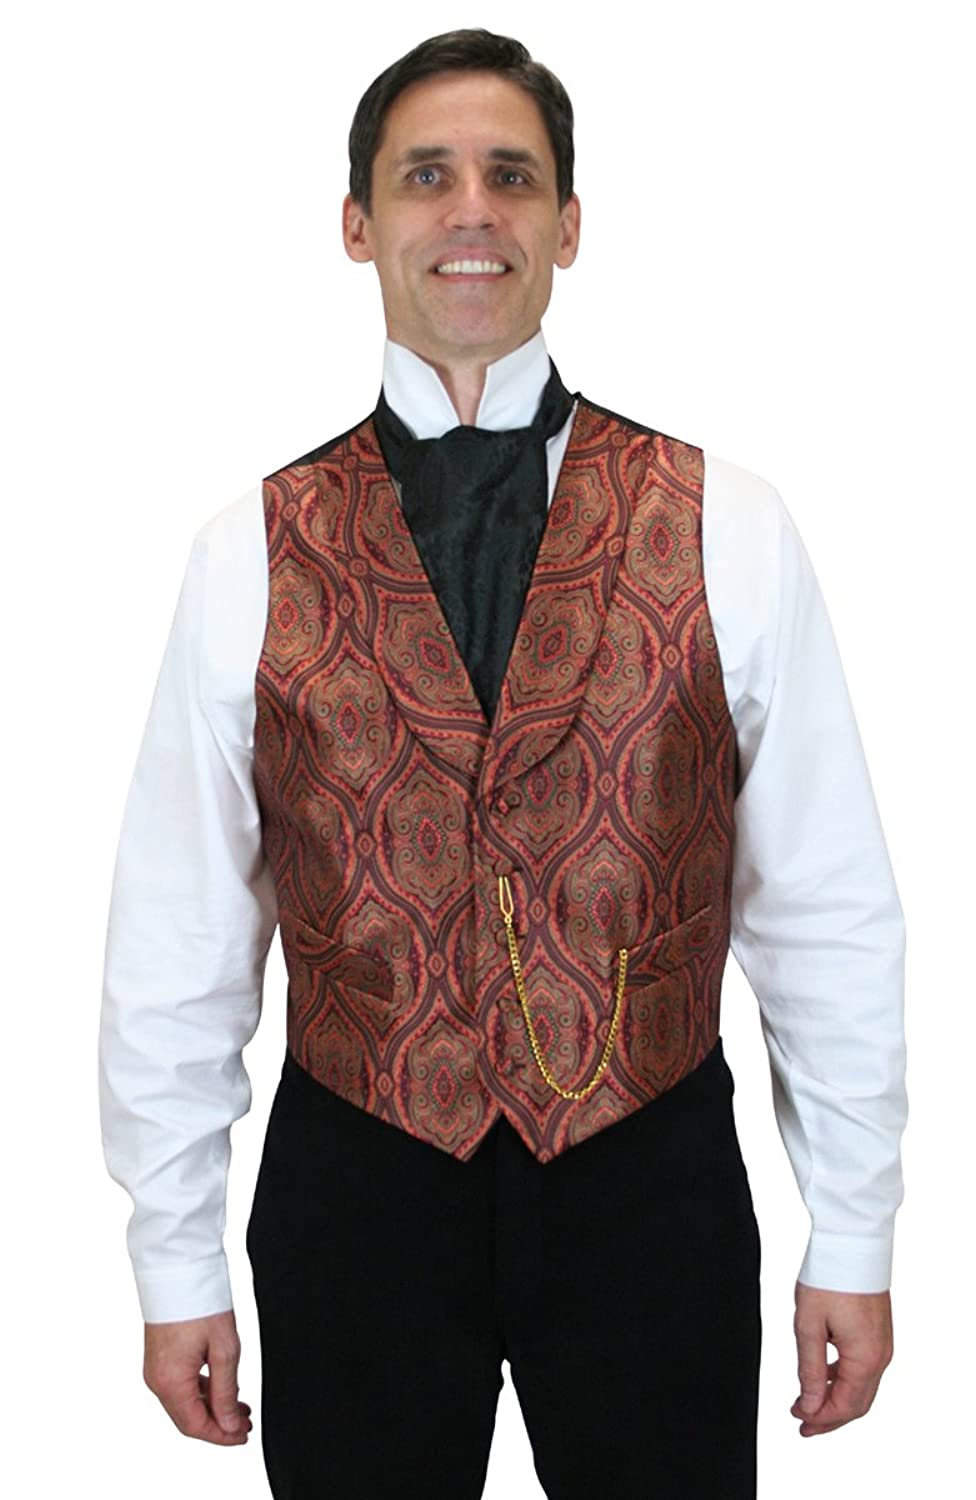 Victorian Men's Vests and Waistcoats Kingsley Dress Vest $64.95 AT vintagedancer.com